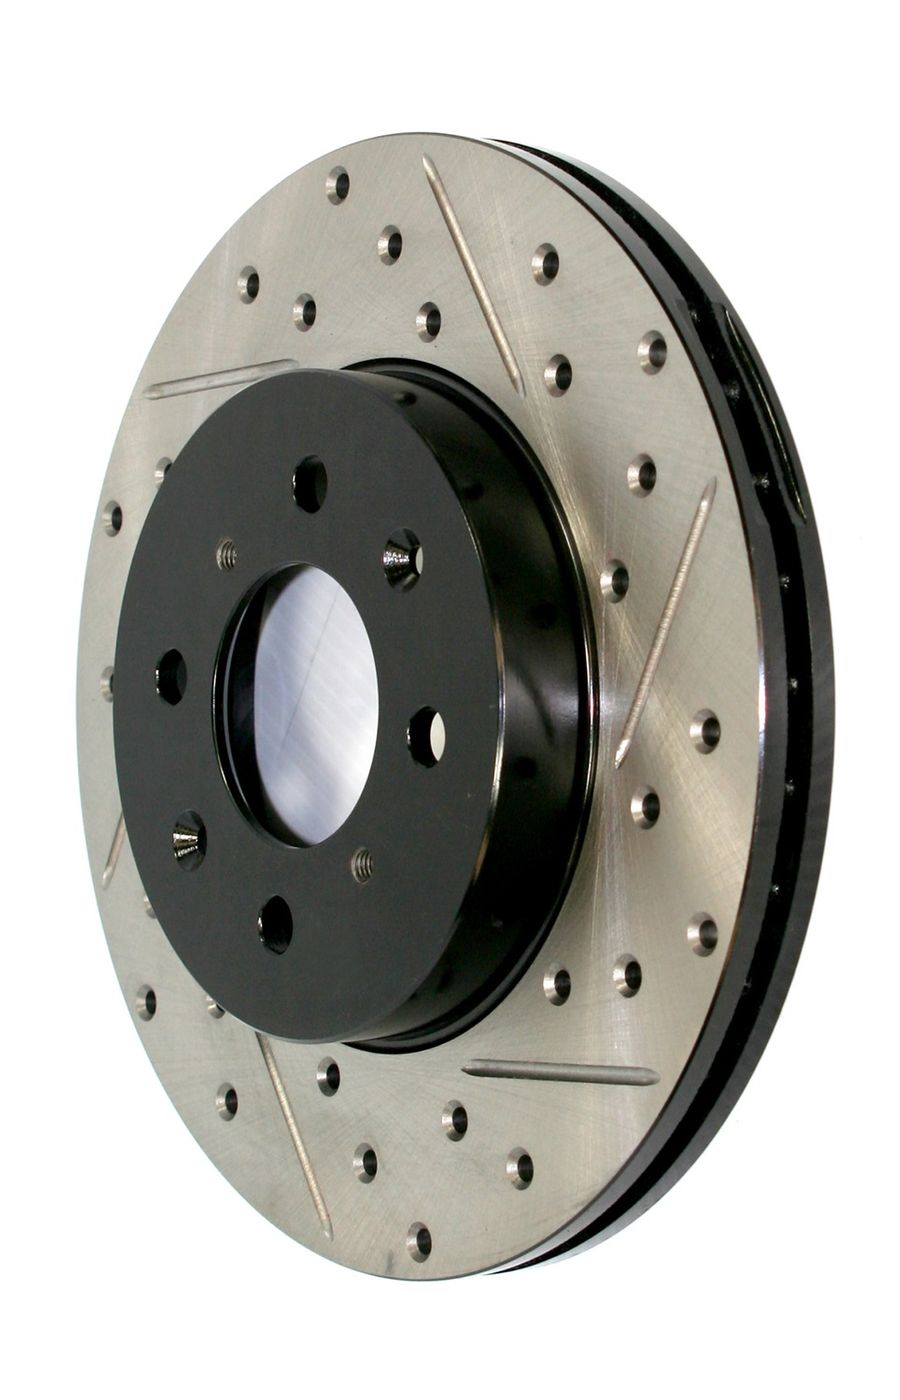 BMW 325iX StopTech Disc Brake Rotors Brakes StopTech Sport Drilled/Slotted Disc 127.61066R